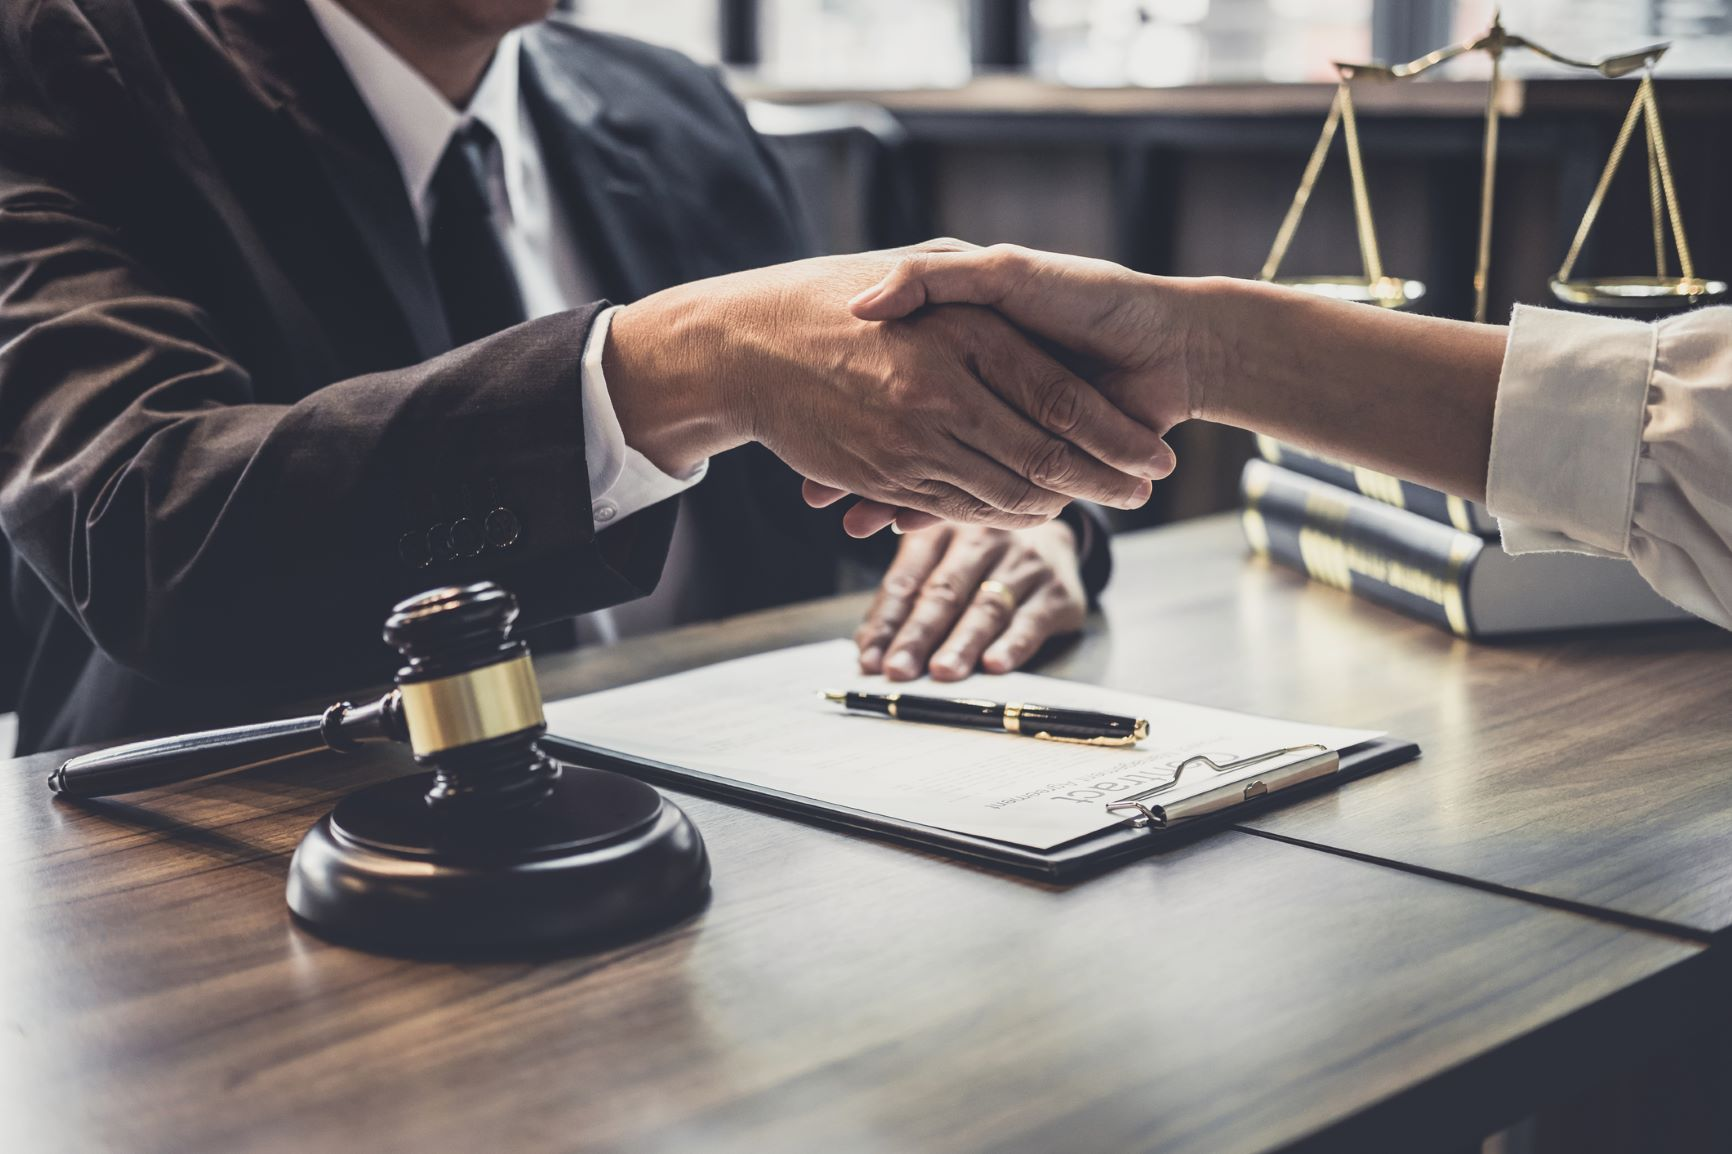 attorney and client meet and shake hands over desk in law firm office